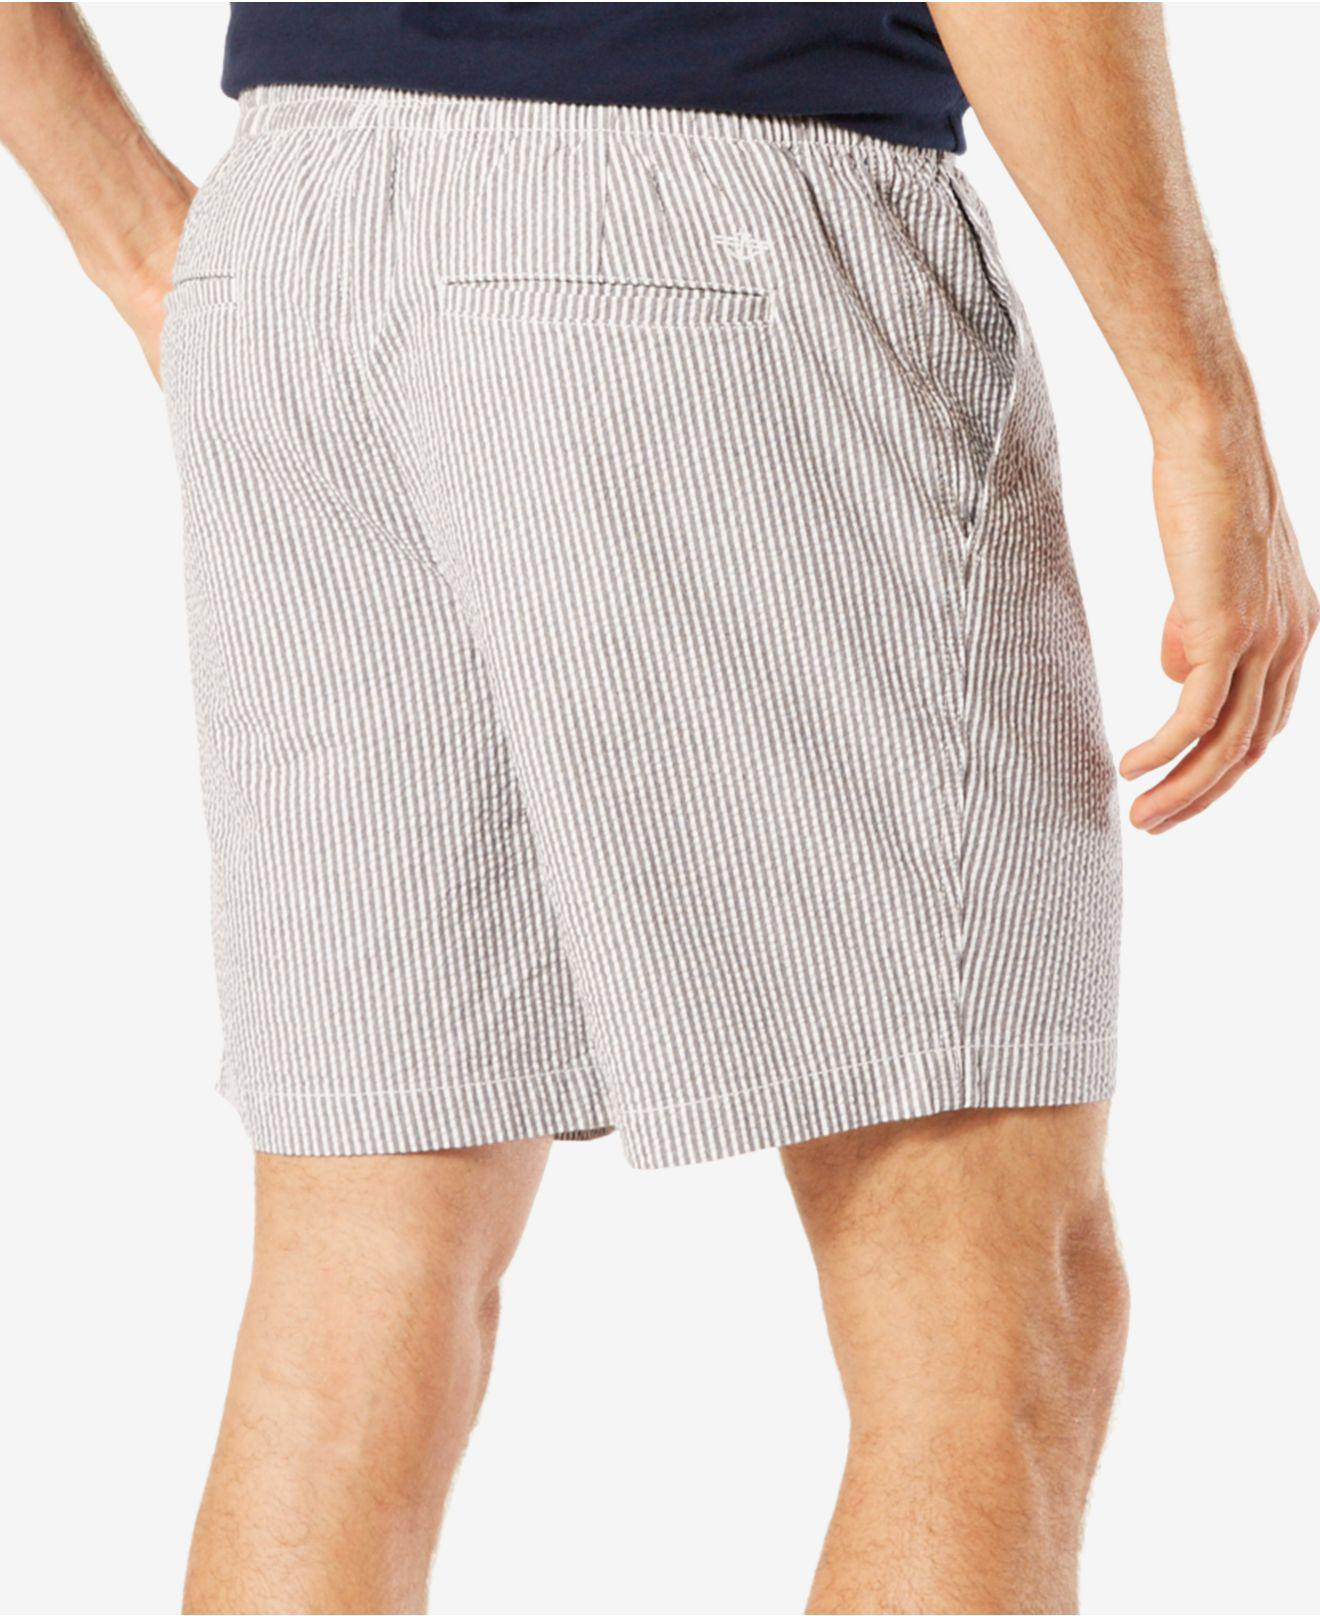 65540a8f71 Dockers Men's Printed Weekend Cruiser Shorts in Gray for Men - Lyst